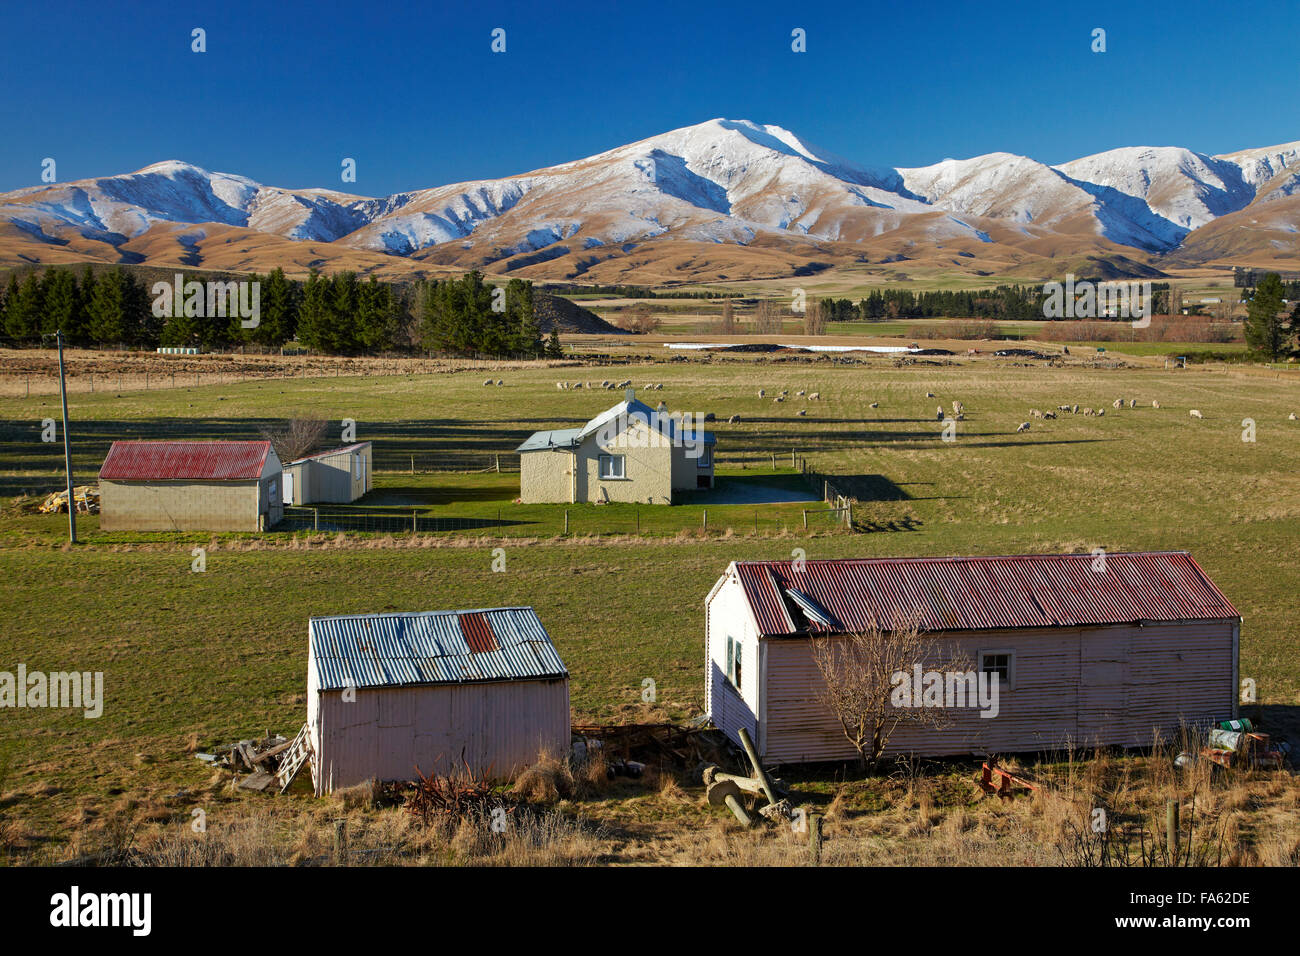 Old farm buildings and Kakanui Mountains, Maniototo, Central Otago, South Island, New Zealand - Stock Image